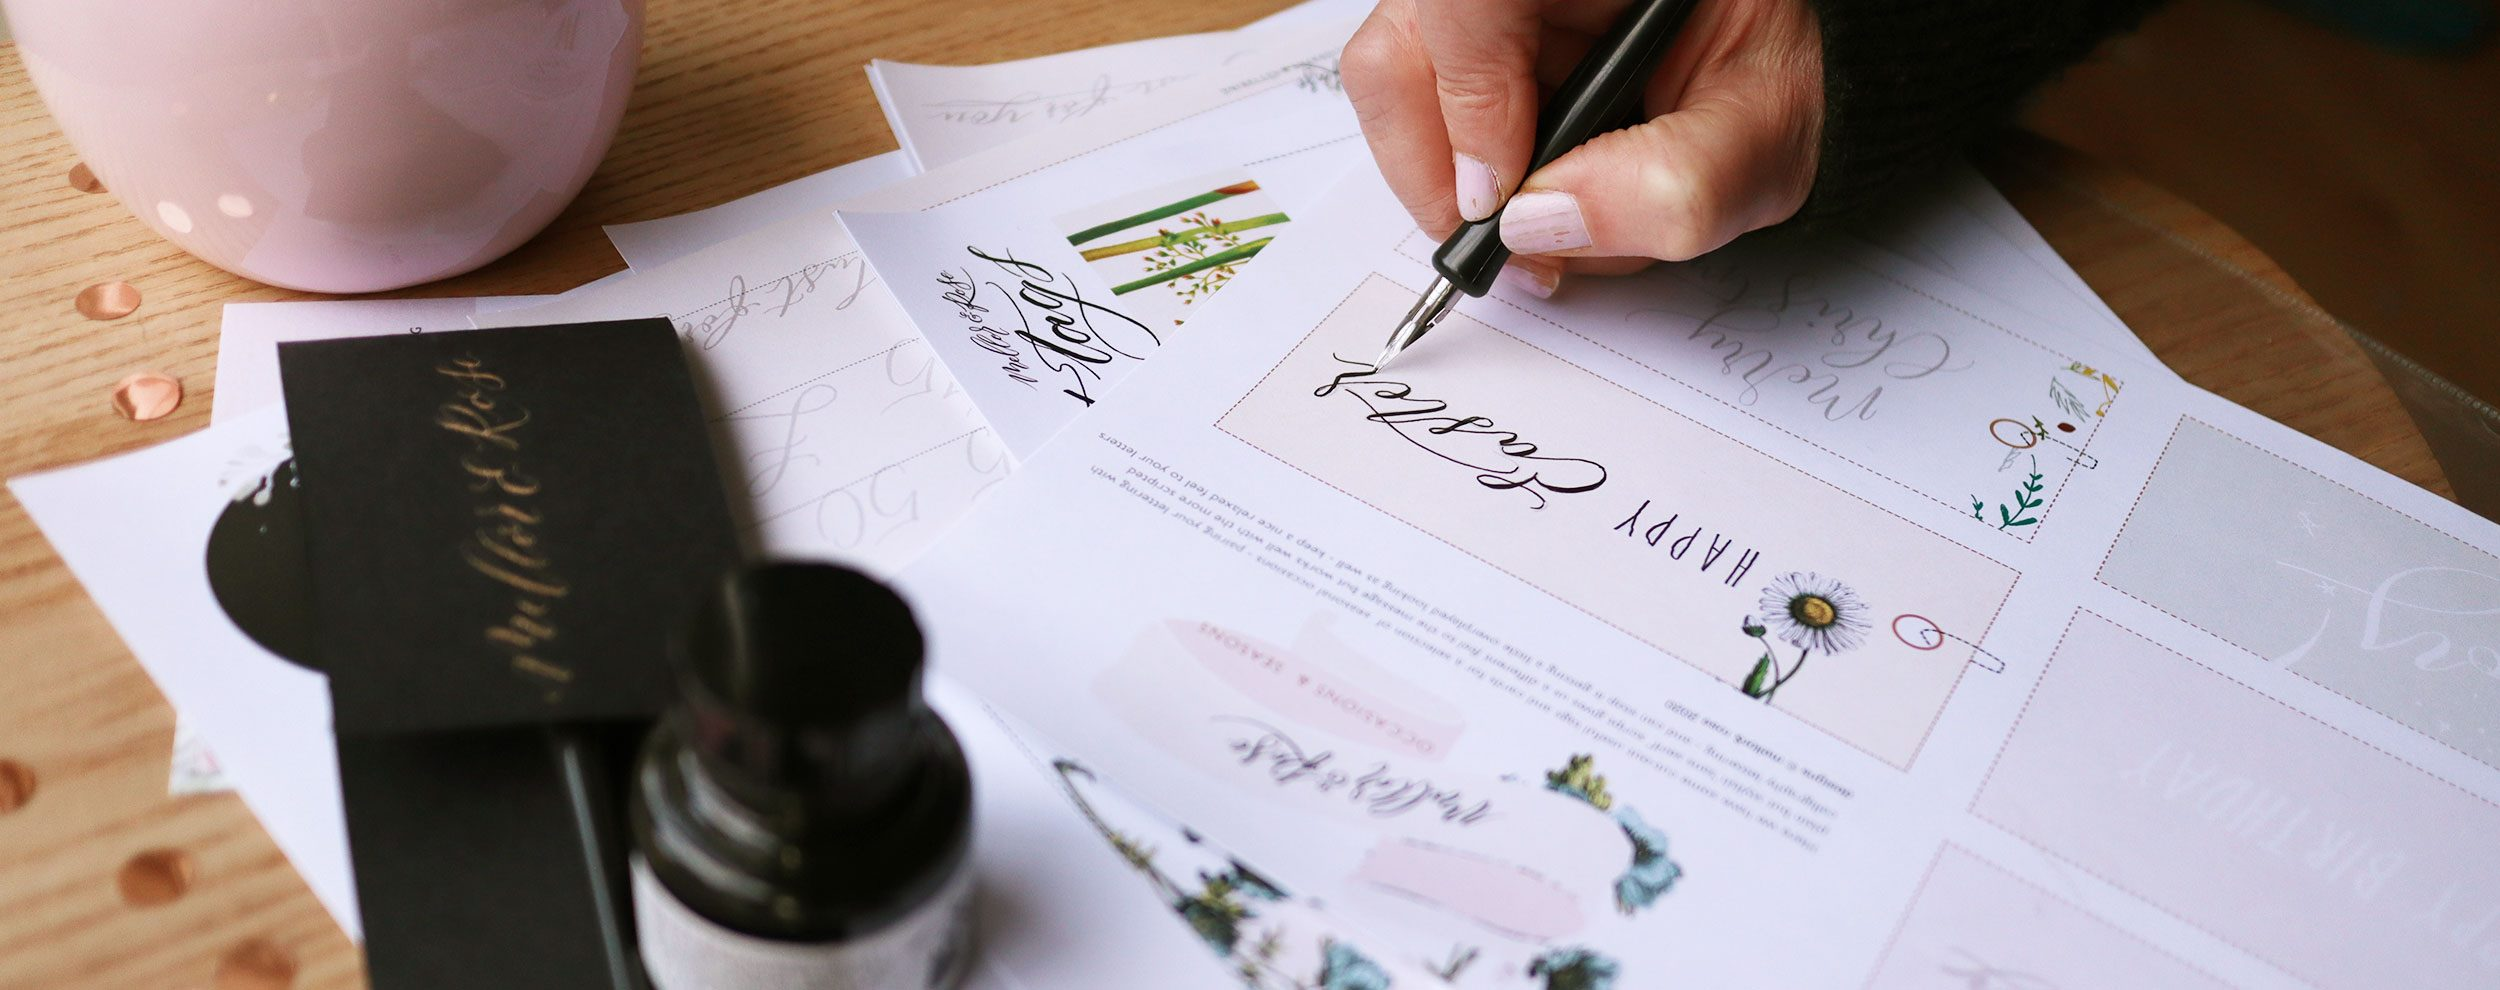 Lytham Hall Calligraphy Workshop